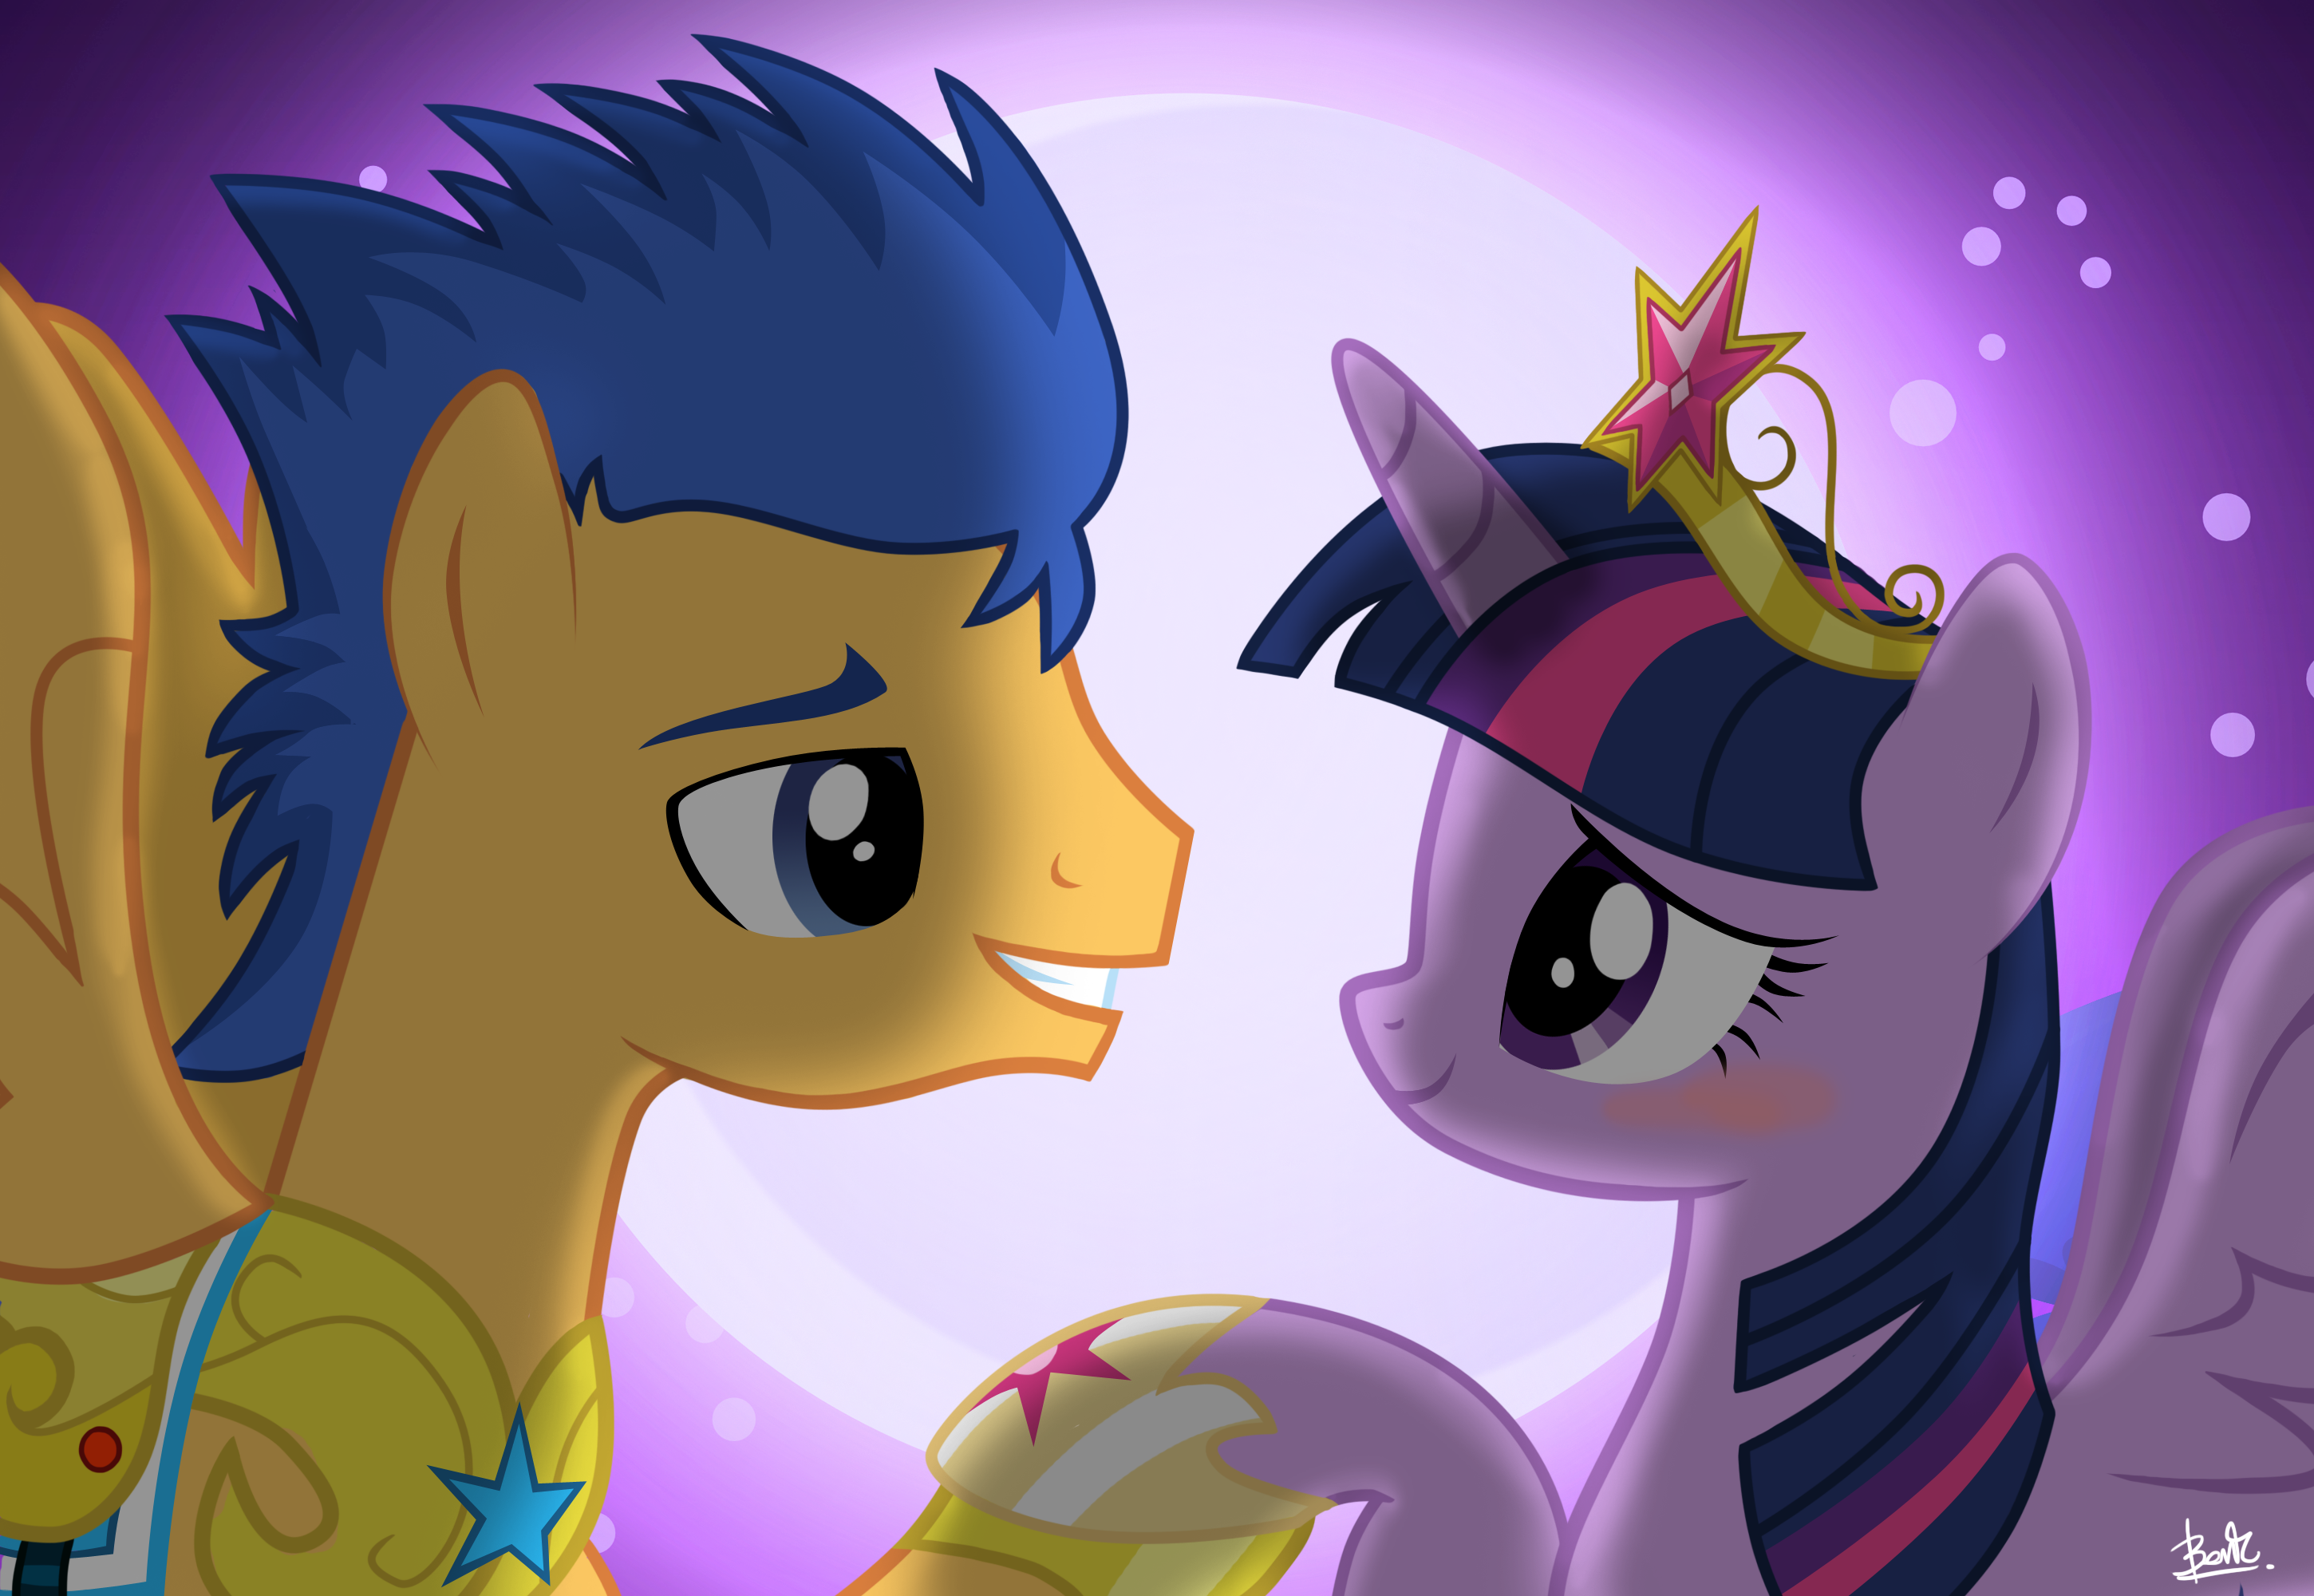 Image - Flash Sentry happy to see Twilight EG.png | My ... |My Little Pony Friendship Is Magic Twilight Sparkle And Flash Sentry